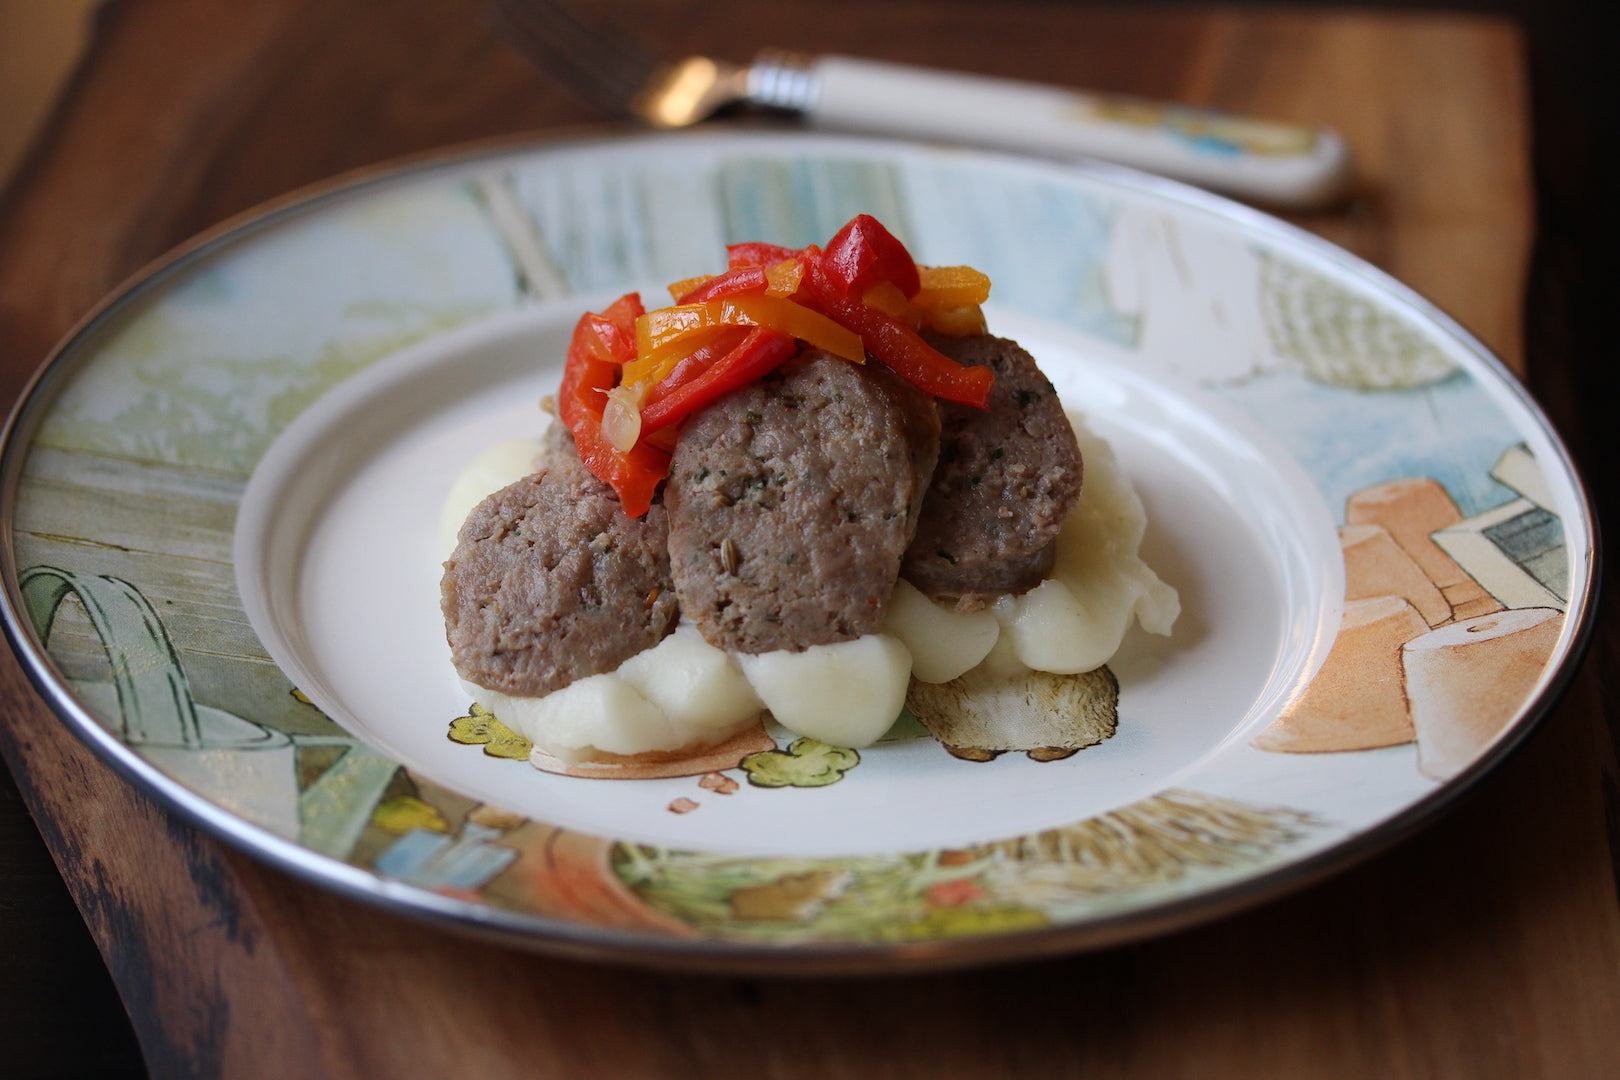 Sausage with peppers and mashed potatoes for kids